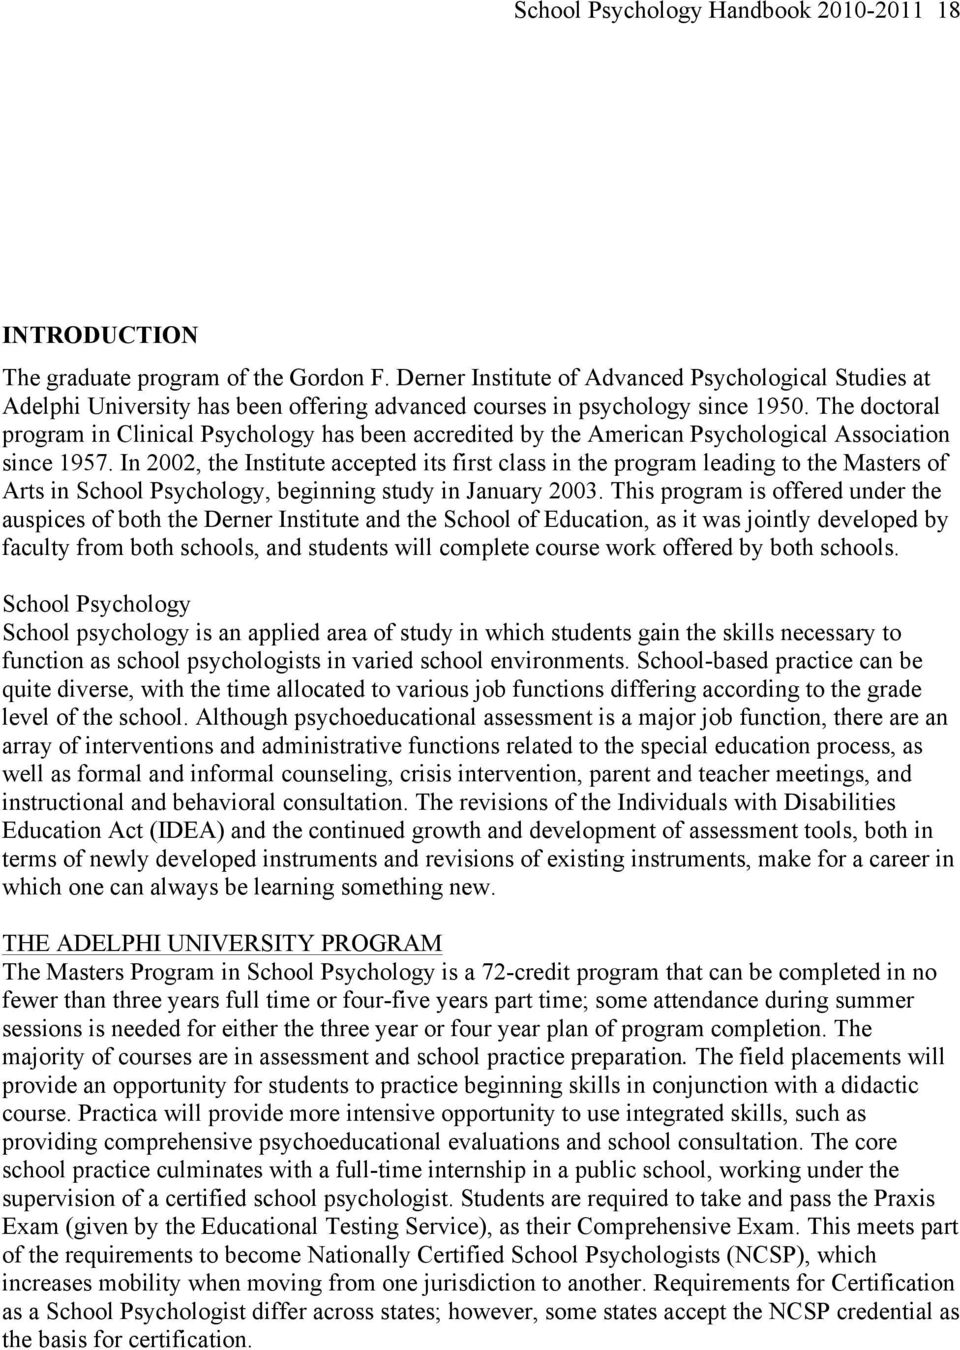 The doctoral program in Clinical Psychology has been accredited by the American Psychological Association since 1957.